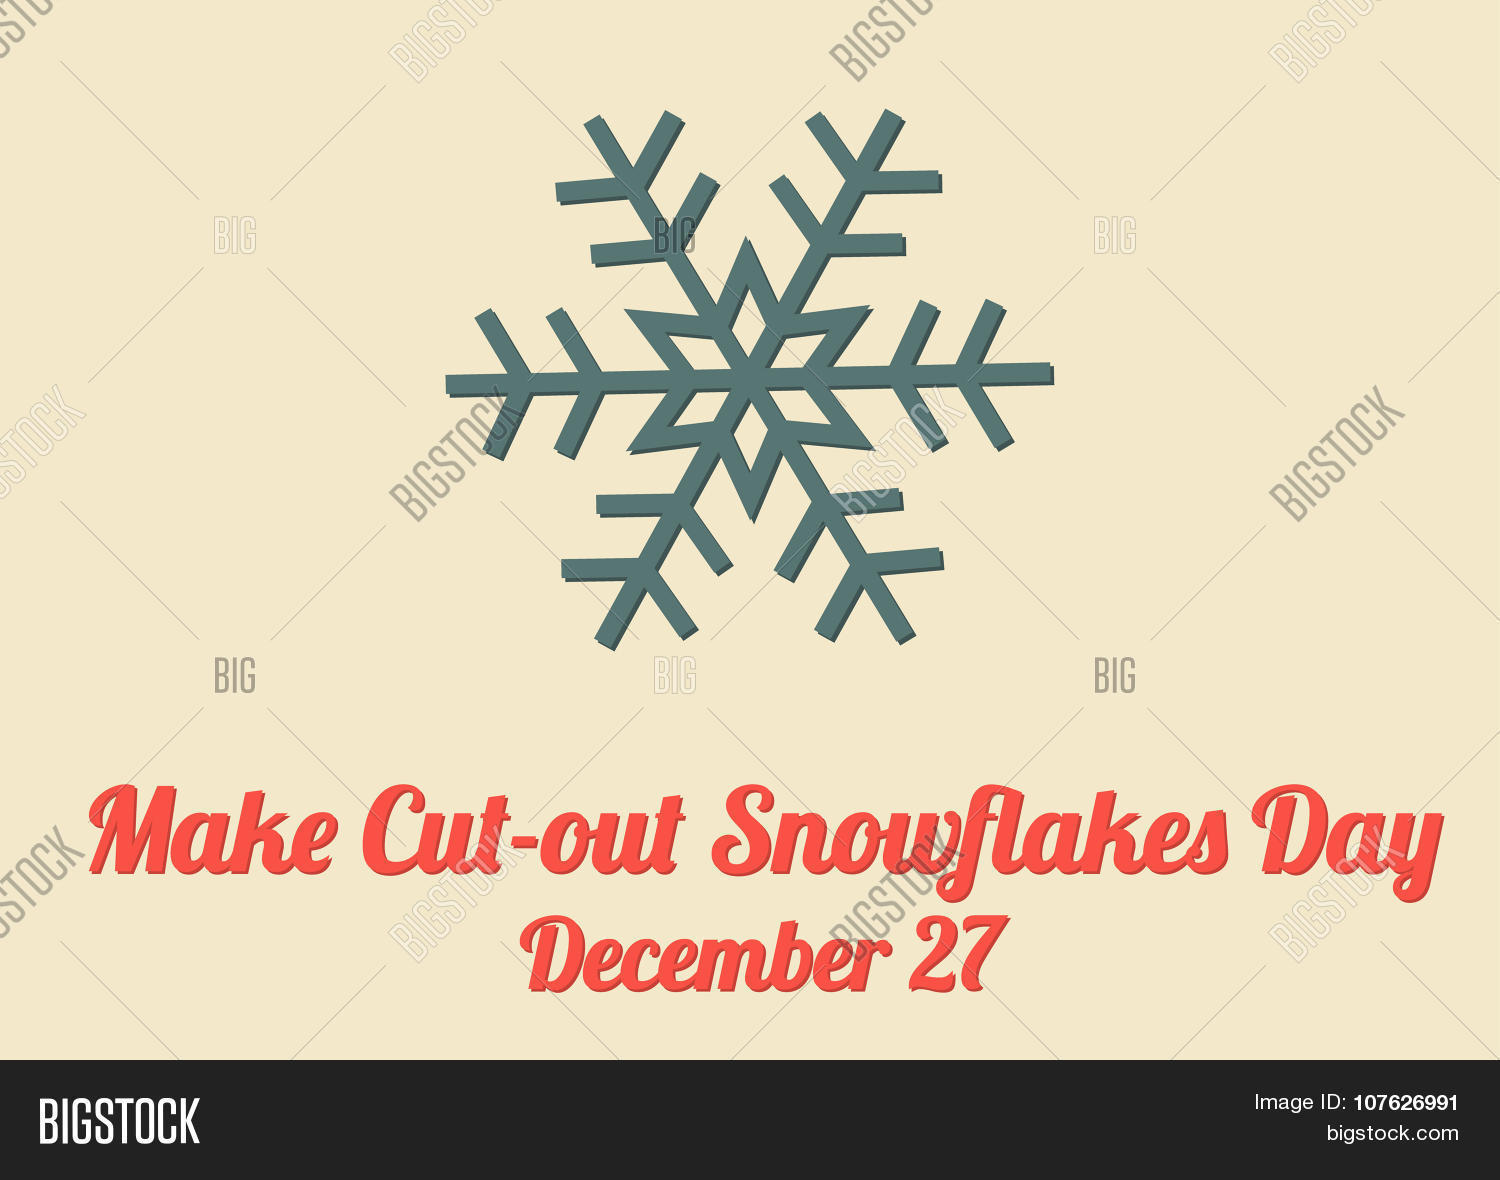 Poster Make Cut-out Snowflakes Day Vector & Photo | Bigstock